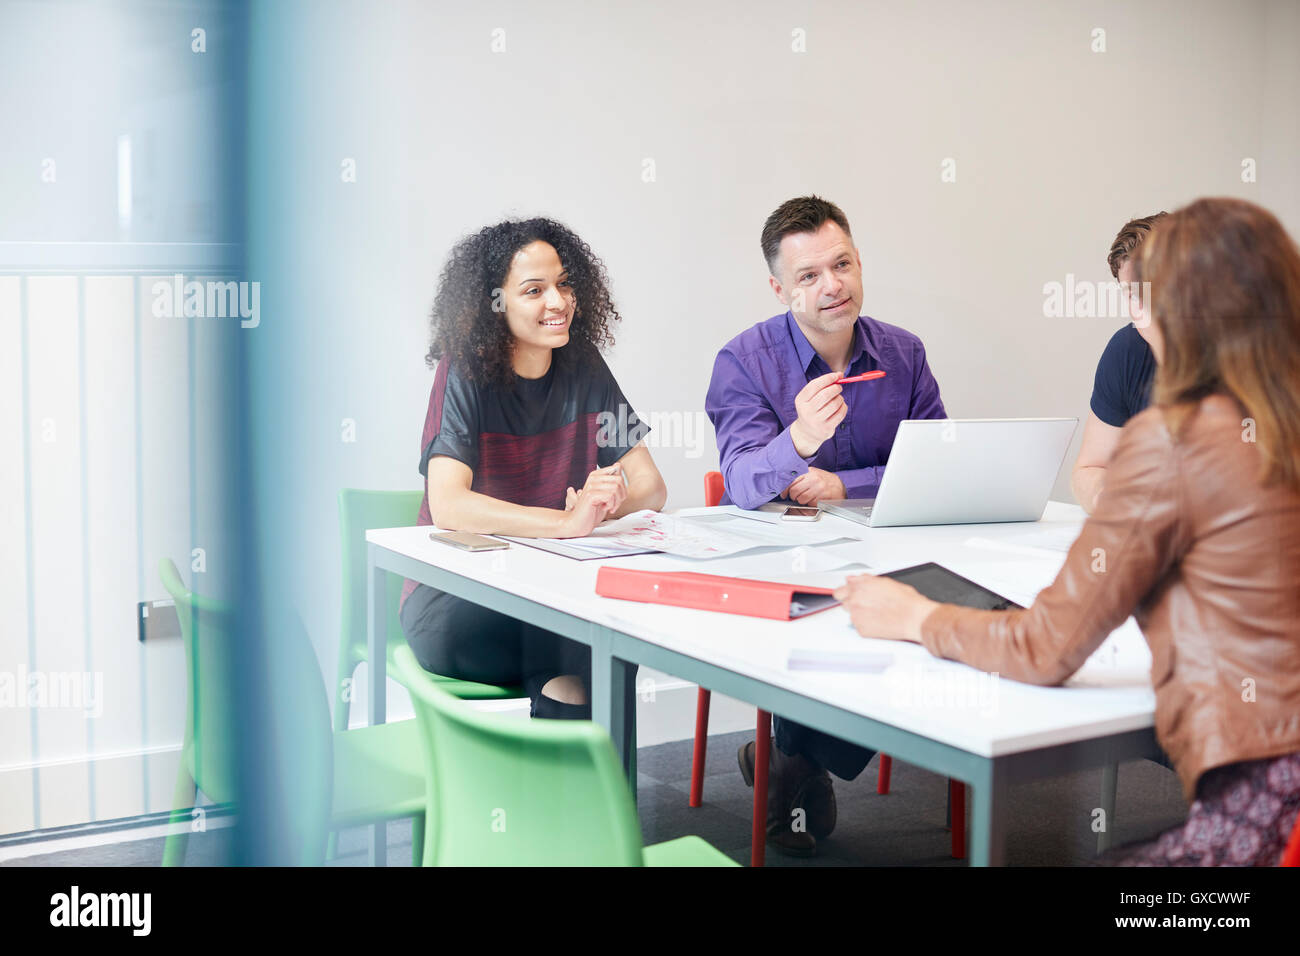 Designers having meeting at design studio boardroom table - Stock Image